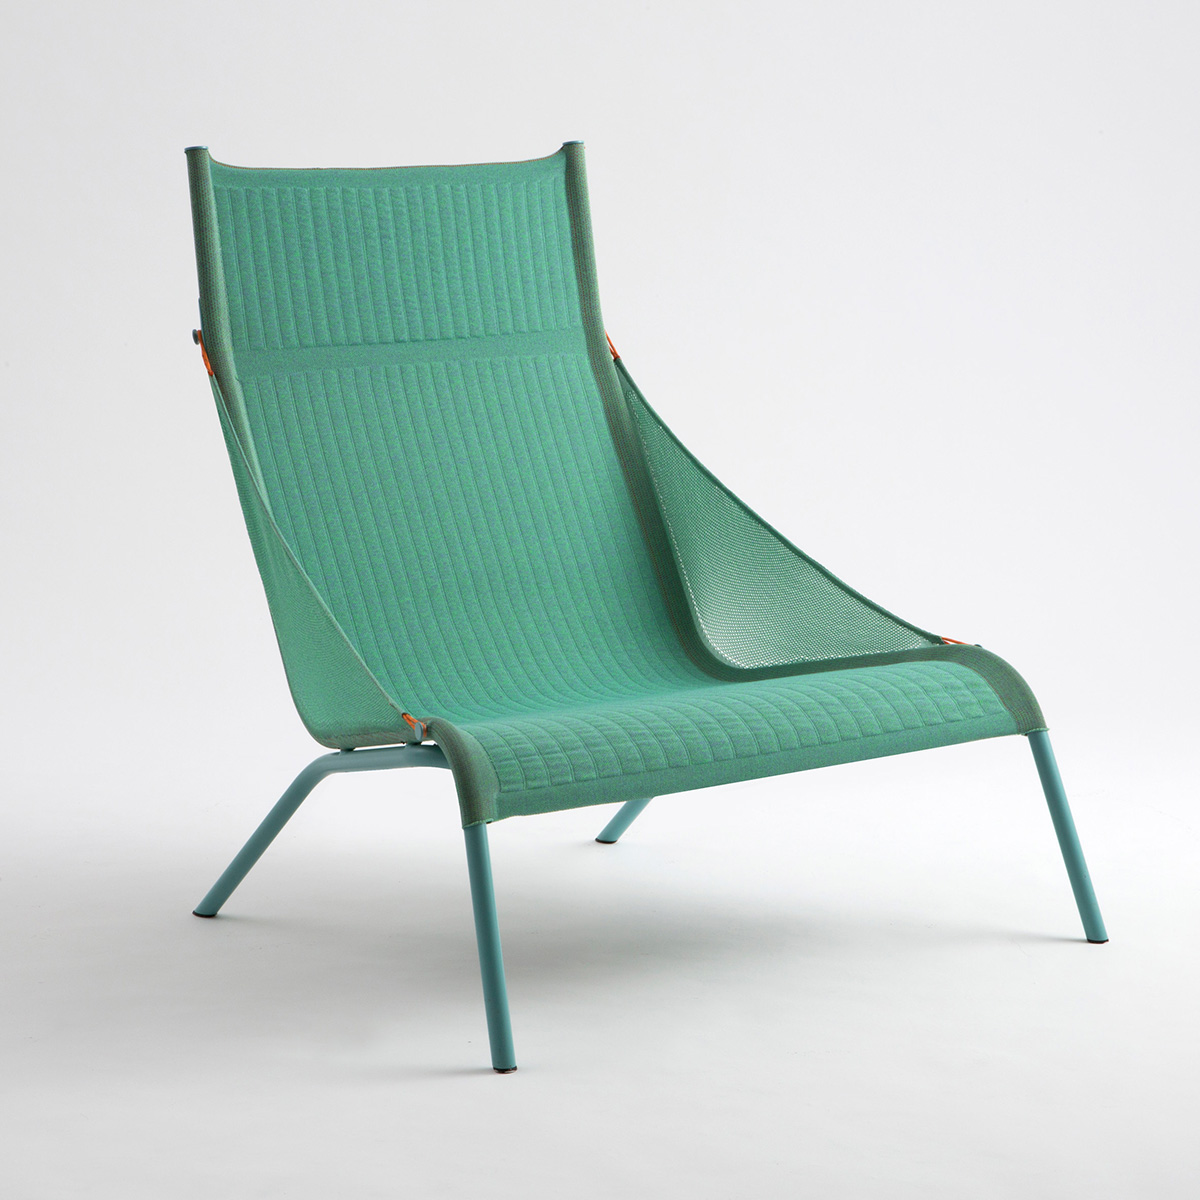 06-tent-chair-layer-design